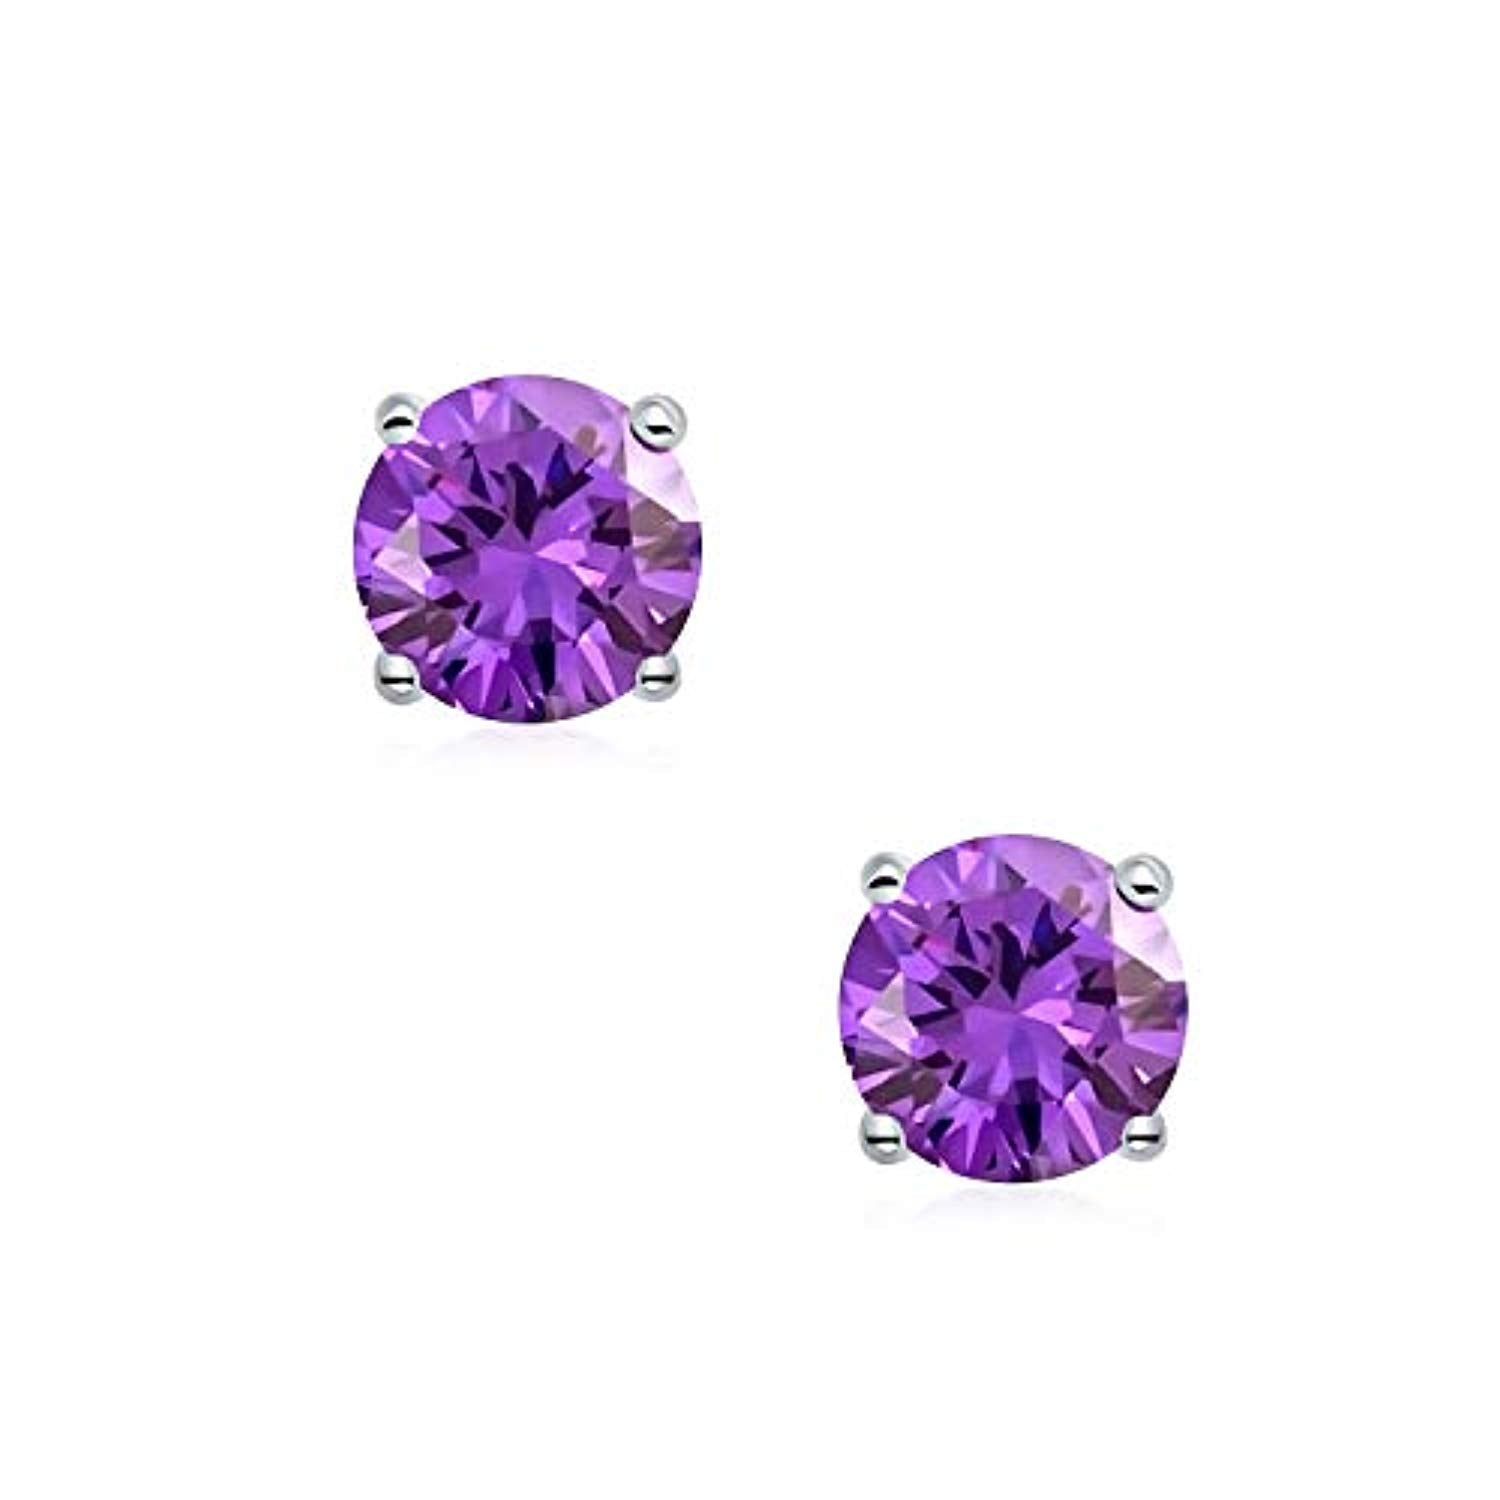 Round Cubic Zirconia AAA CZ Brilliant Cut Solitaire Magnetic Clip On Stud Earrings Sterling Silver